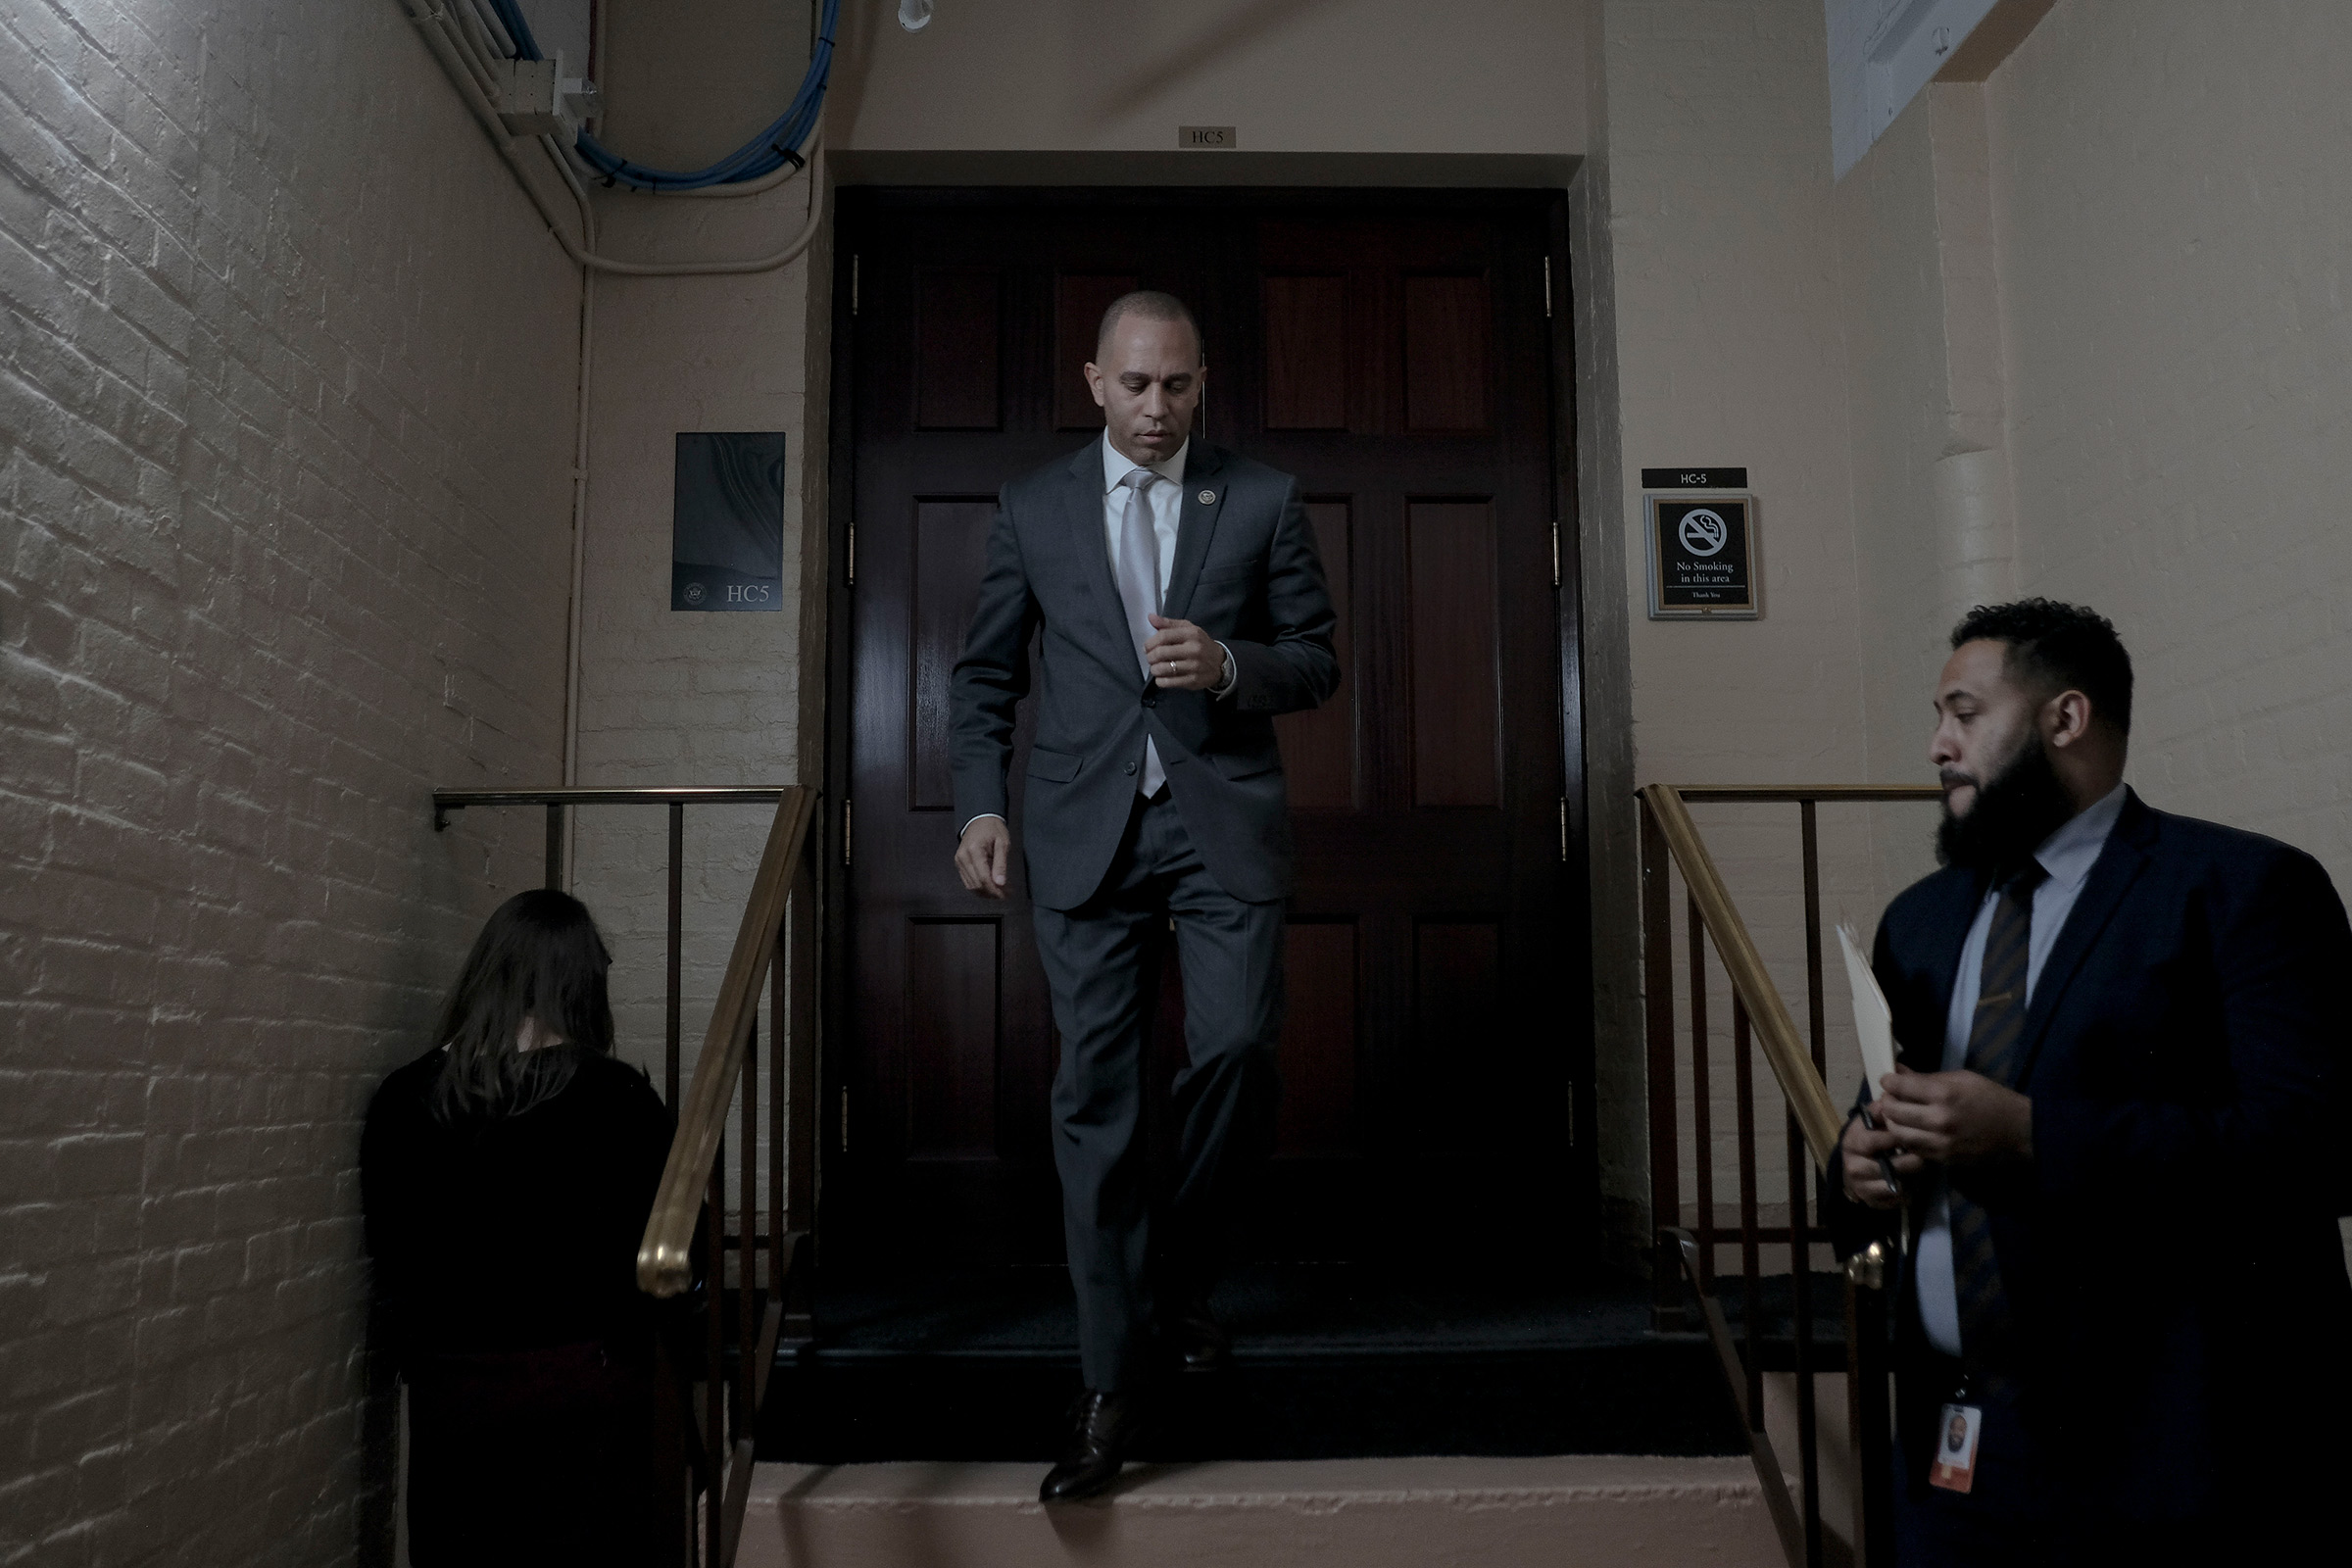 Democratic Caucus Chairman Hakeem Jeffries (D-N.Y.) leaves a meeting with the House Democratic Caucus in the basement of the Capitol in Washington, D.C., on Dec. 17, 2019.